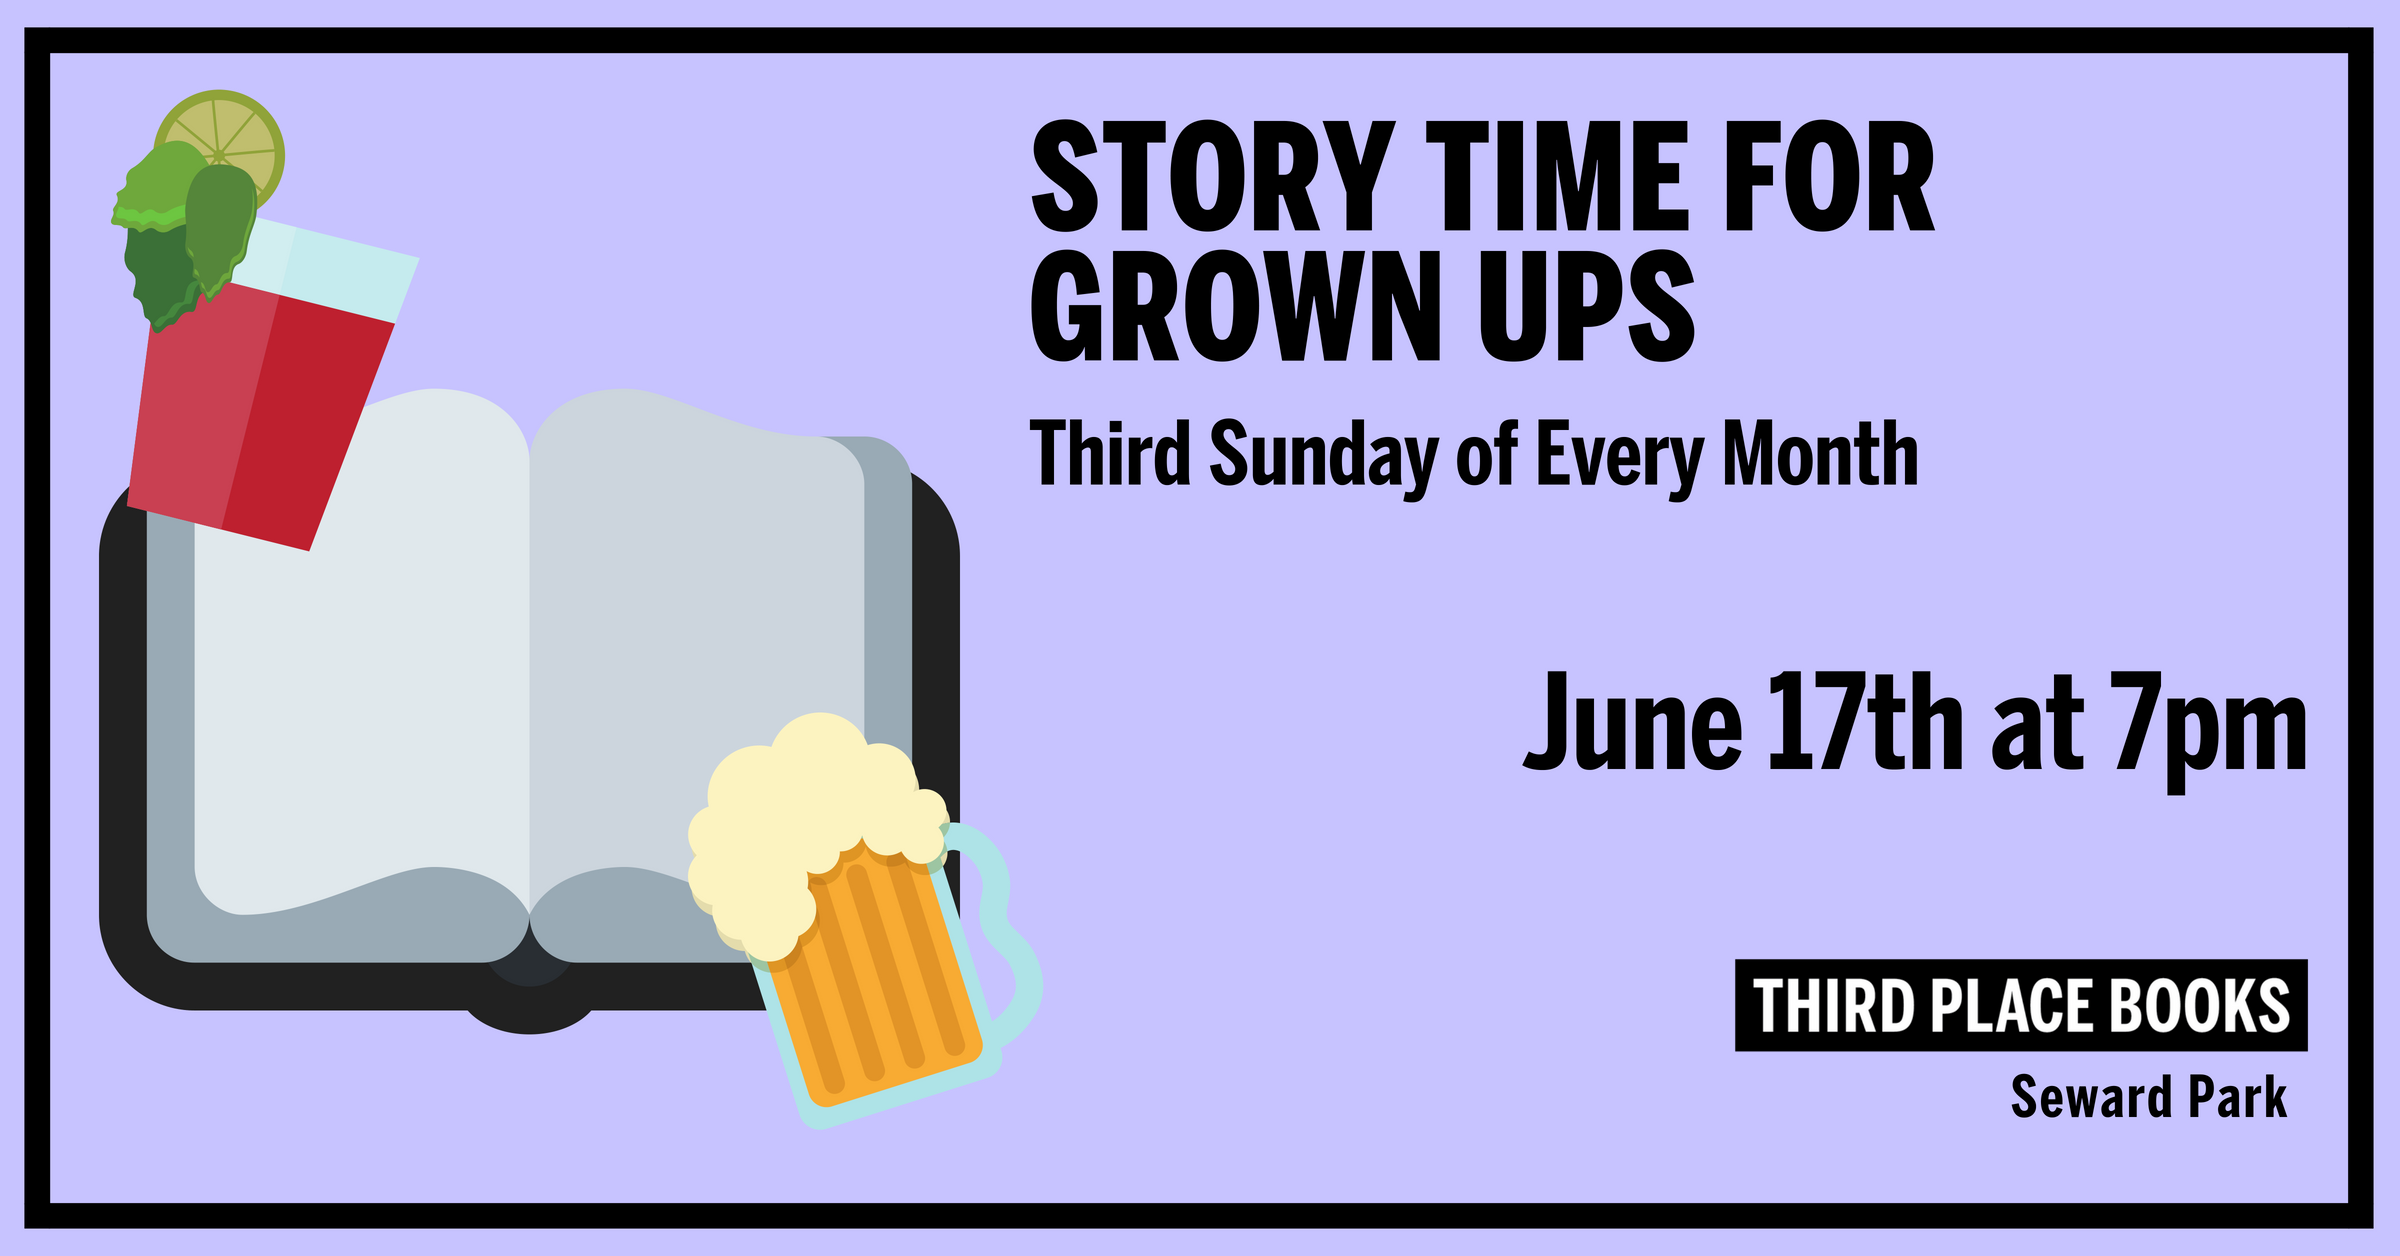 Story Time for Grown Ups! on Sunday, June 17th at 7pm